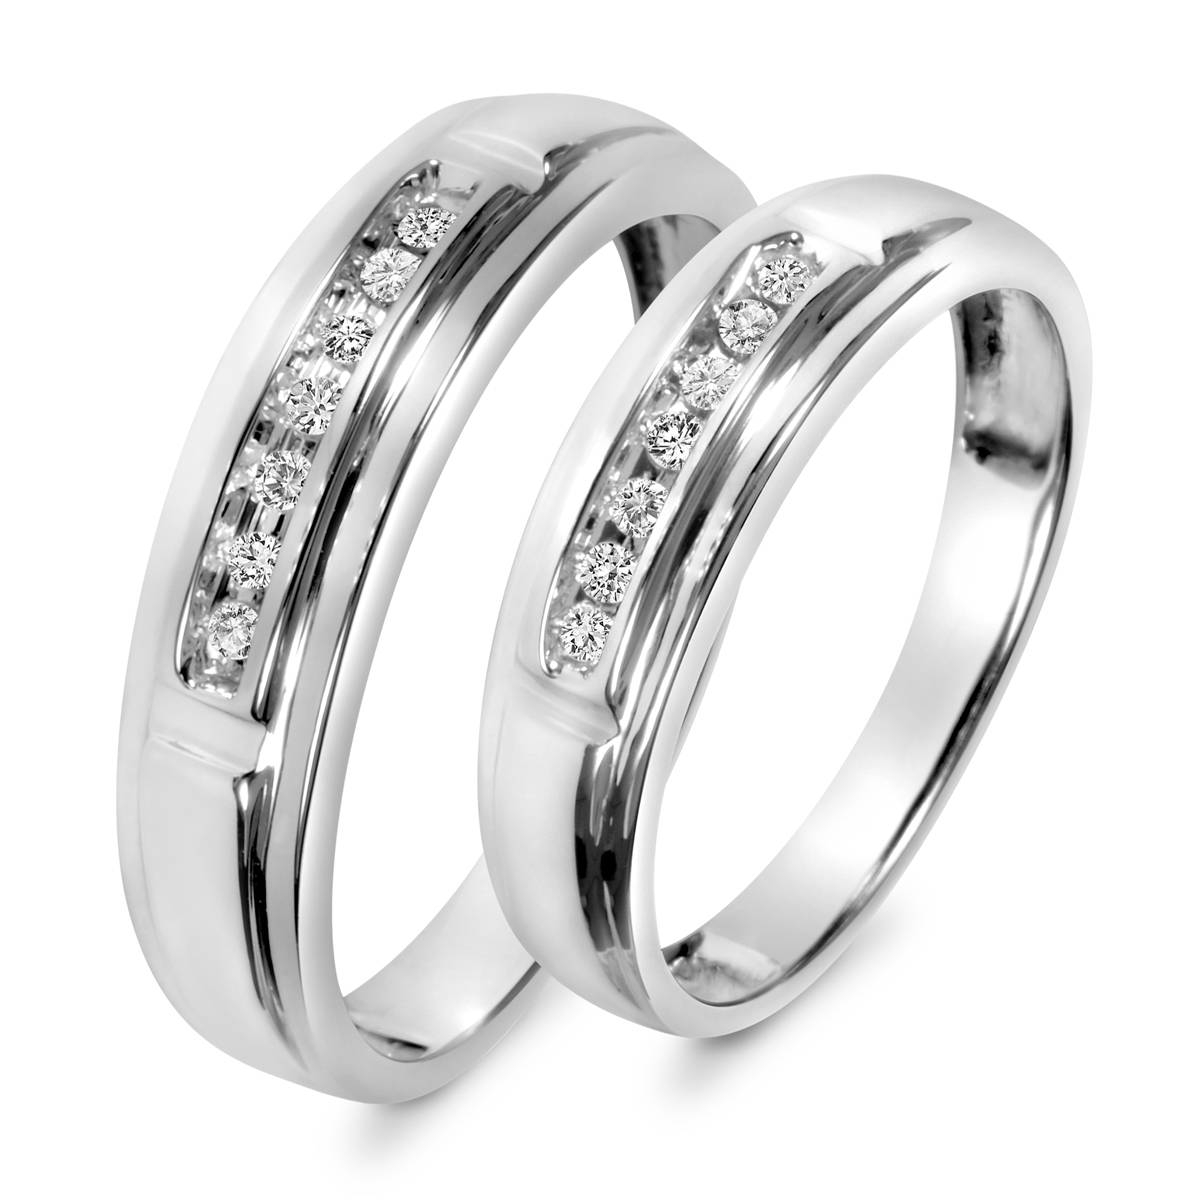 50 White Gold Wedding Ring Sets His And Hers, Com: His Her Wedding With Cheap Wedding Bands Sets His And Hers (View 15 of 15)